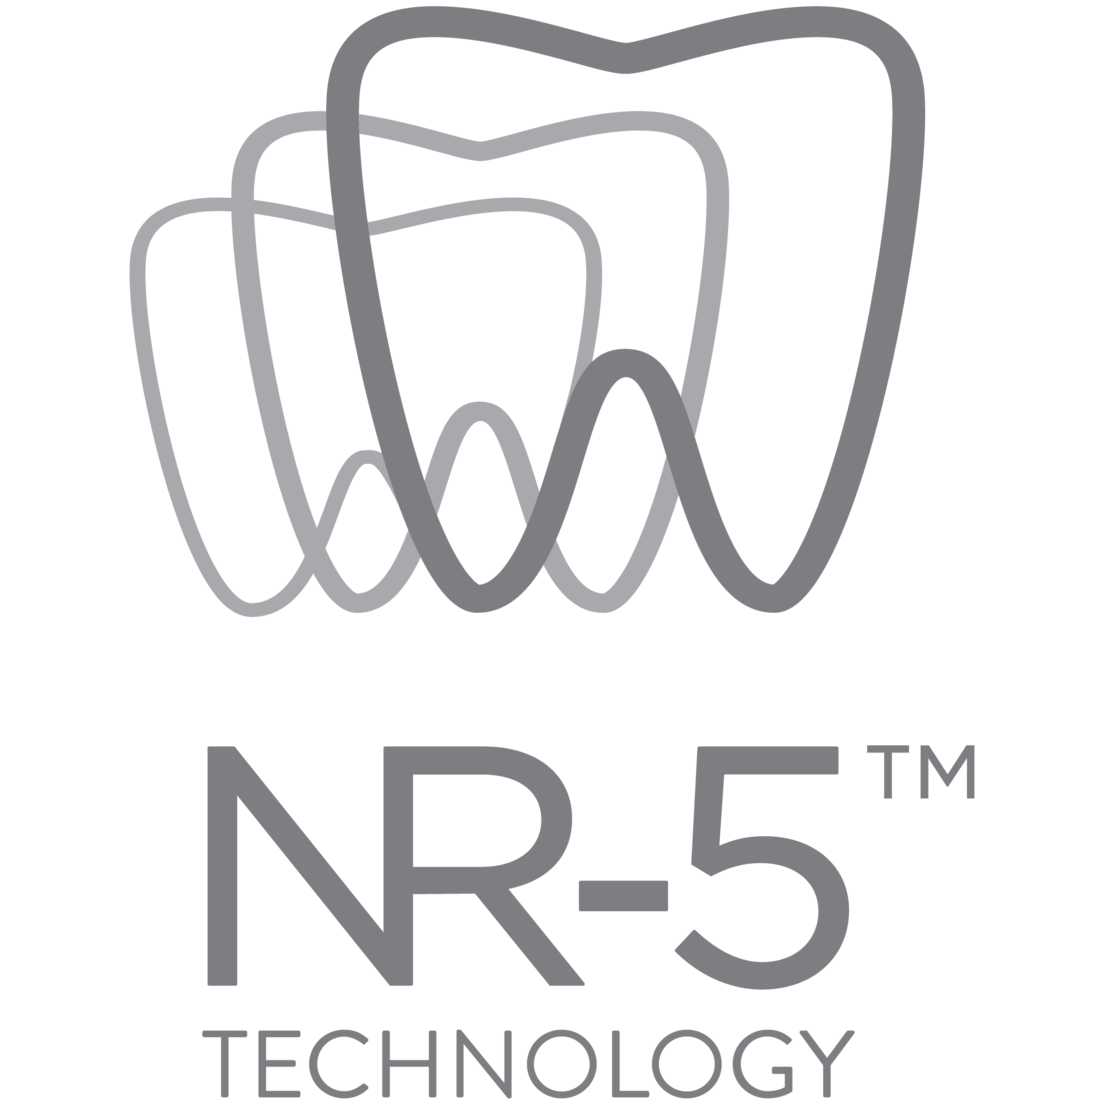 plus-d'informations-sur-la-technologie-nr-5™